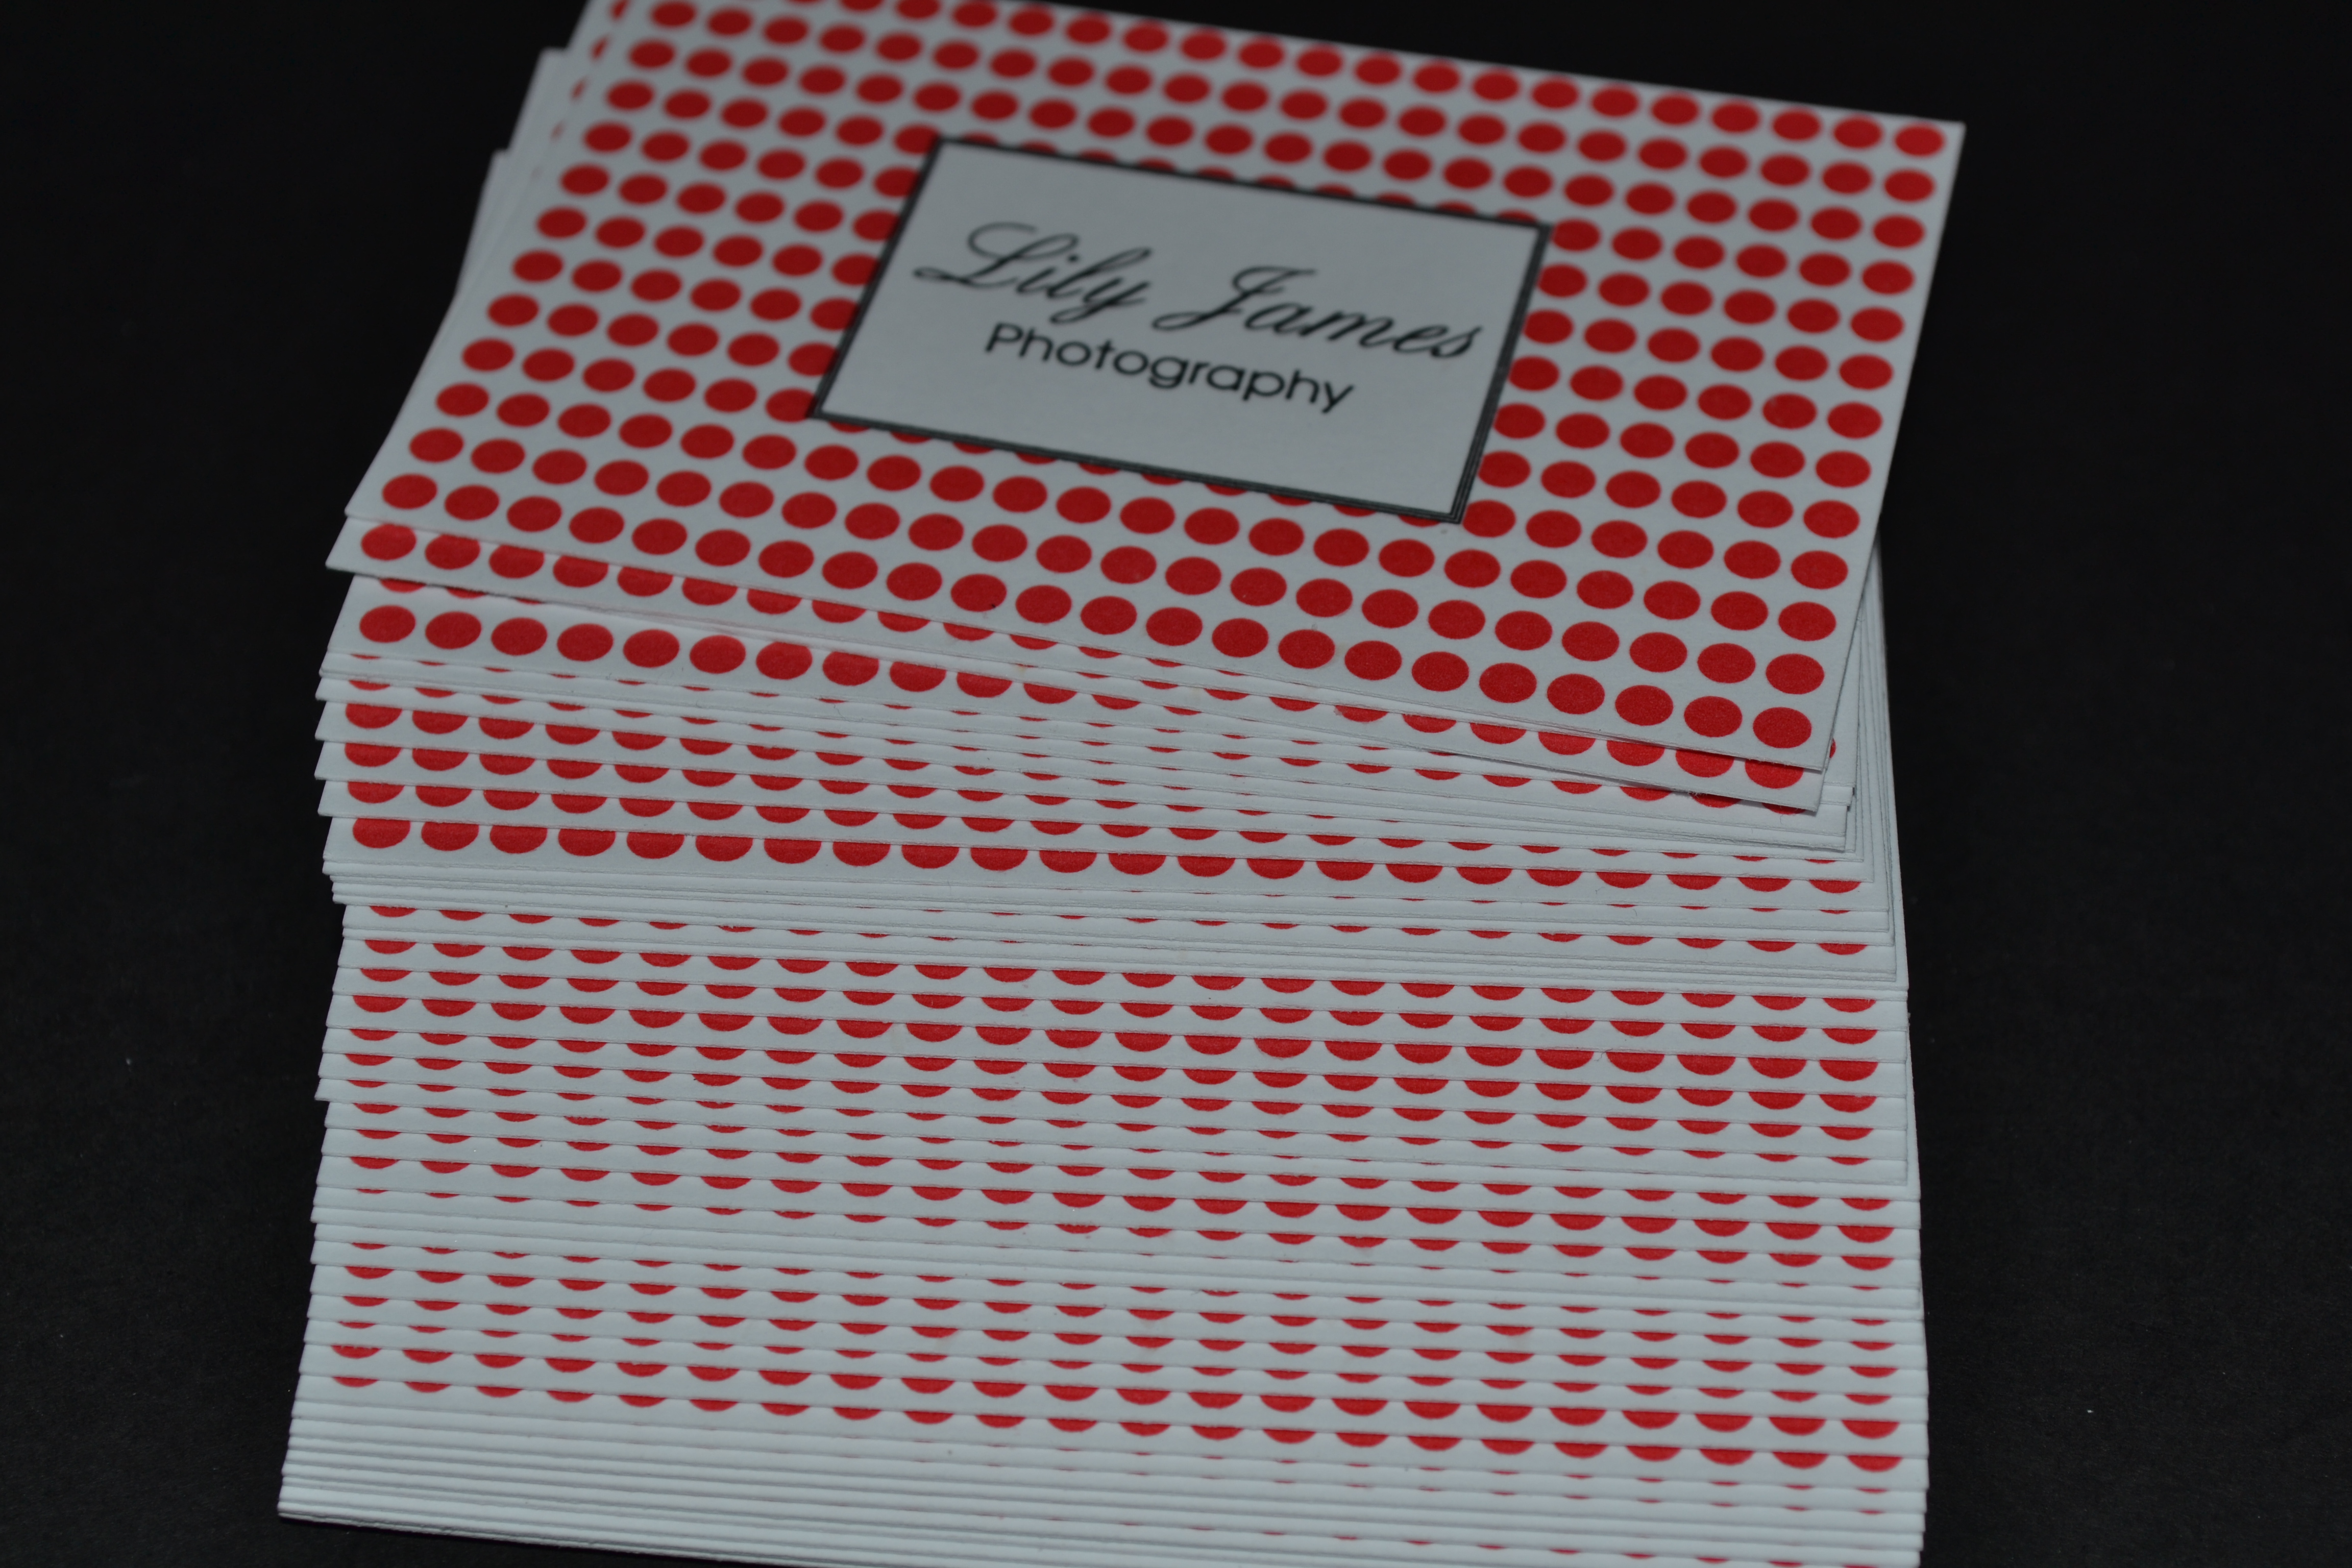 Raised printed business cards qty 250 starting from 5500 thermo printed business cards in red black reheart Choice Image